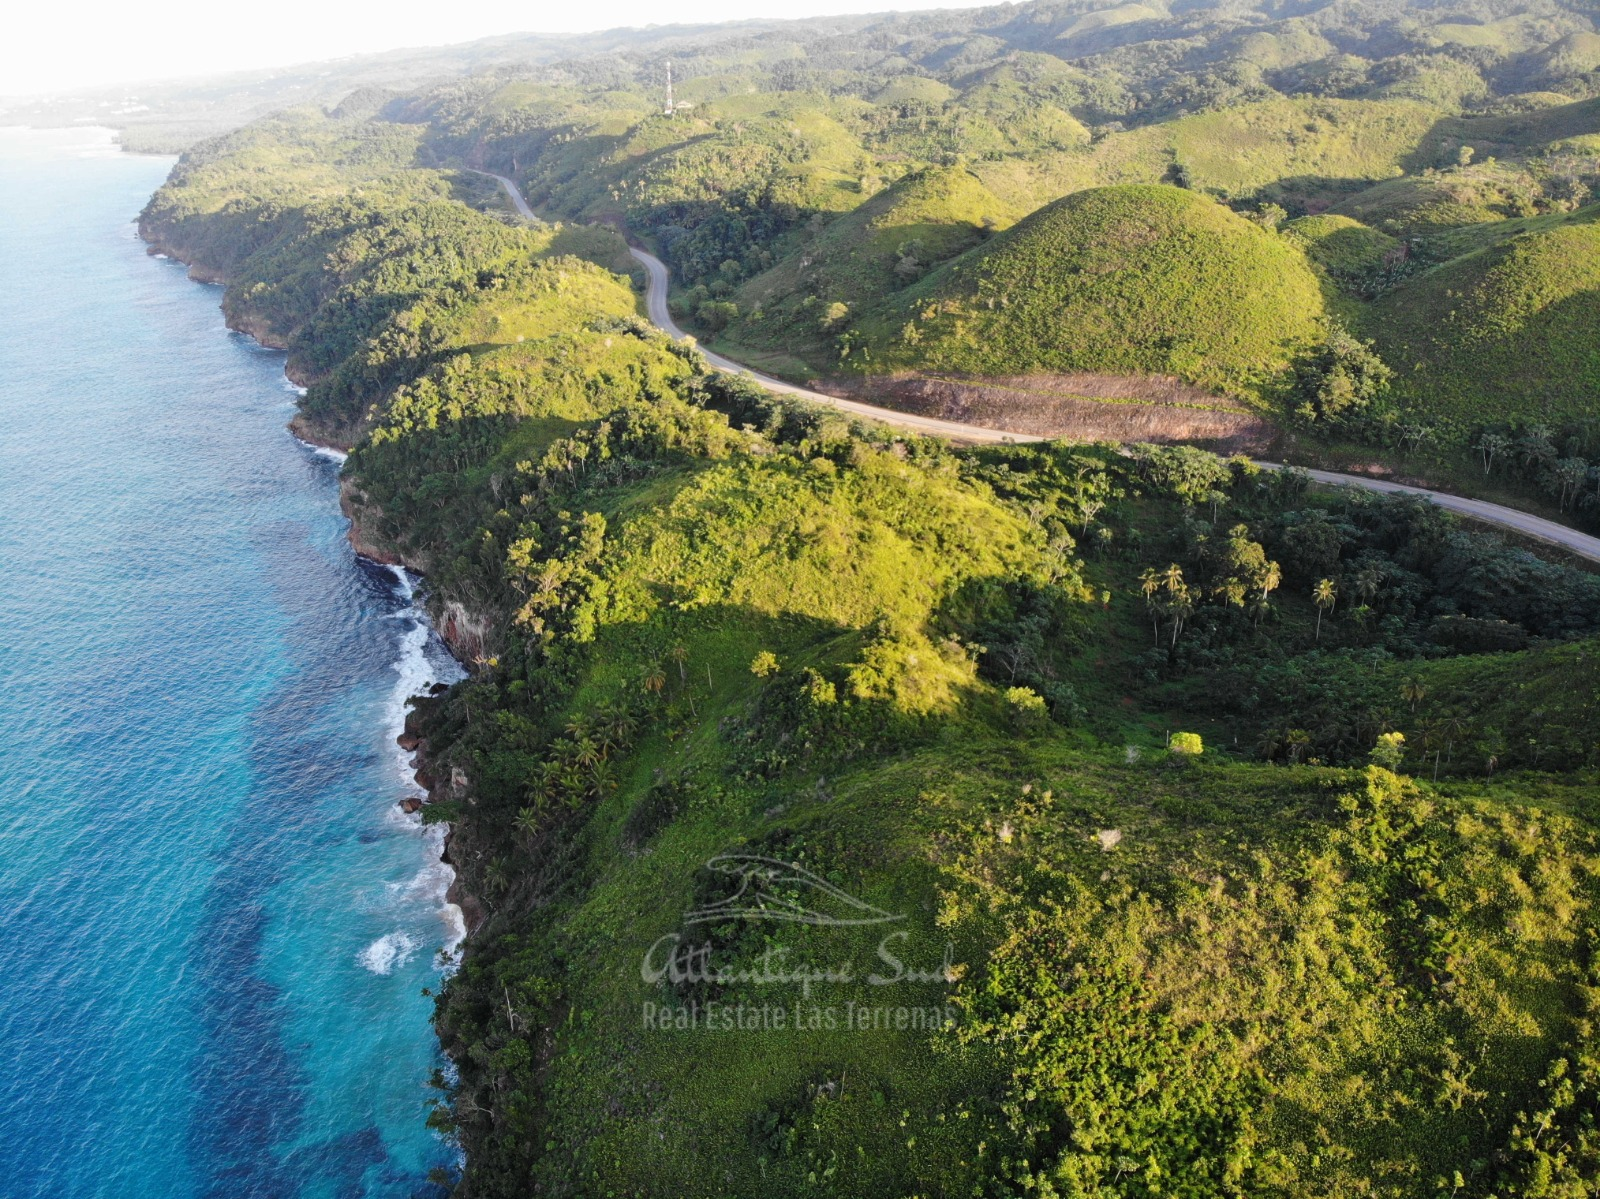 Cliff Land for Sale Las Terrenas 23.jpeg